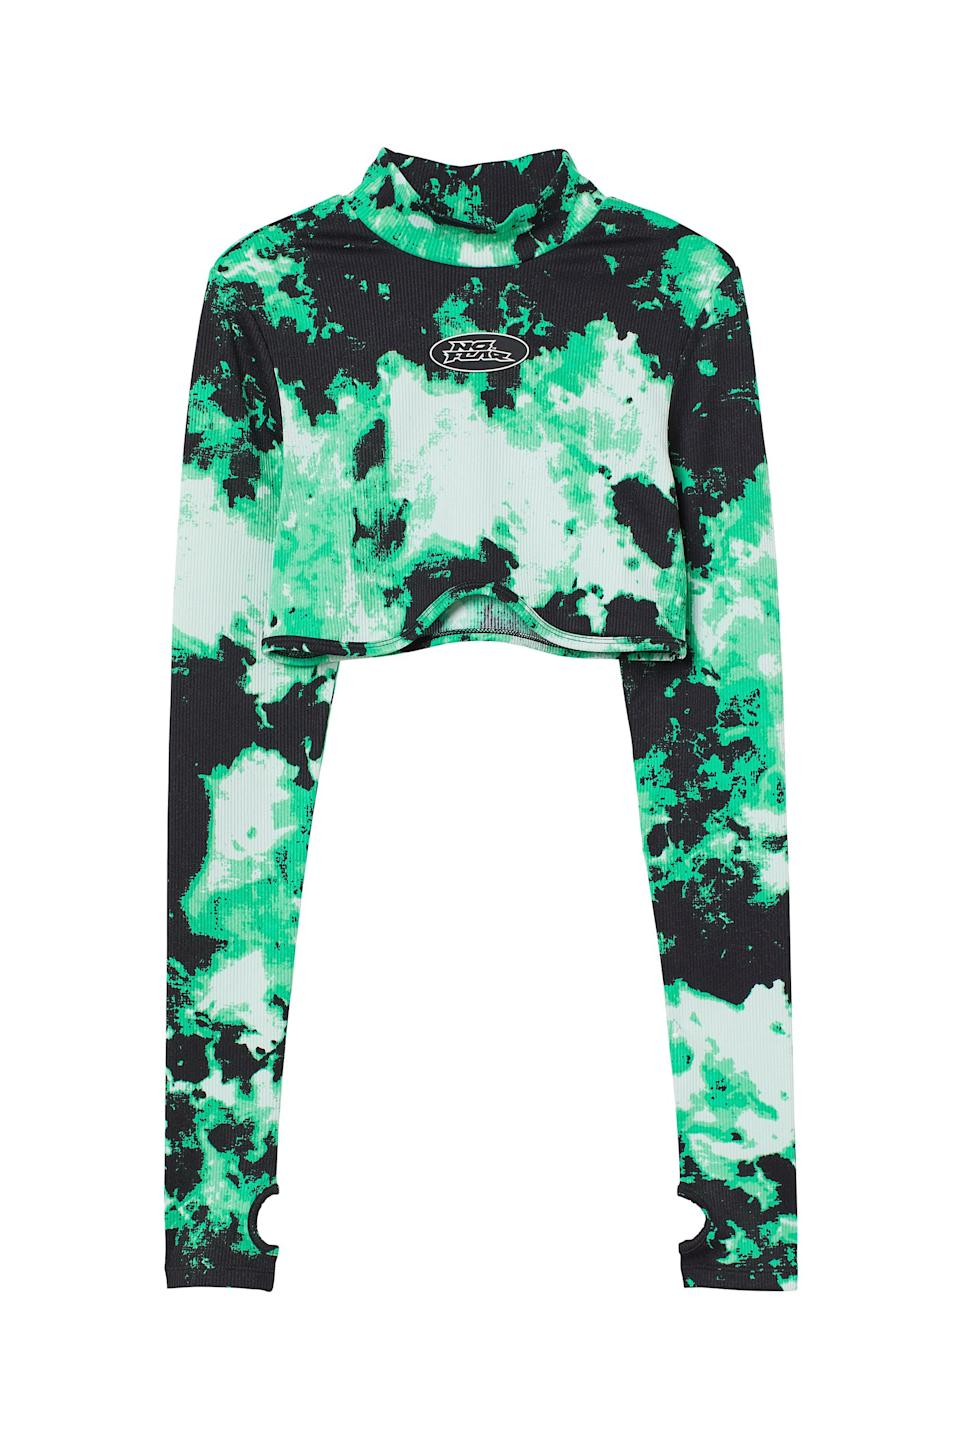 <p>We love all the details on this <span>No Fear x H&amp;M Long-sleeved Crop Top</span> ($18). The slightly curved under bust is so fun, and we're very into the print.</p>